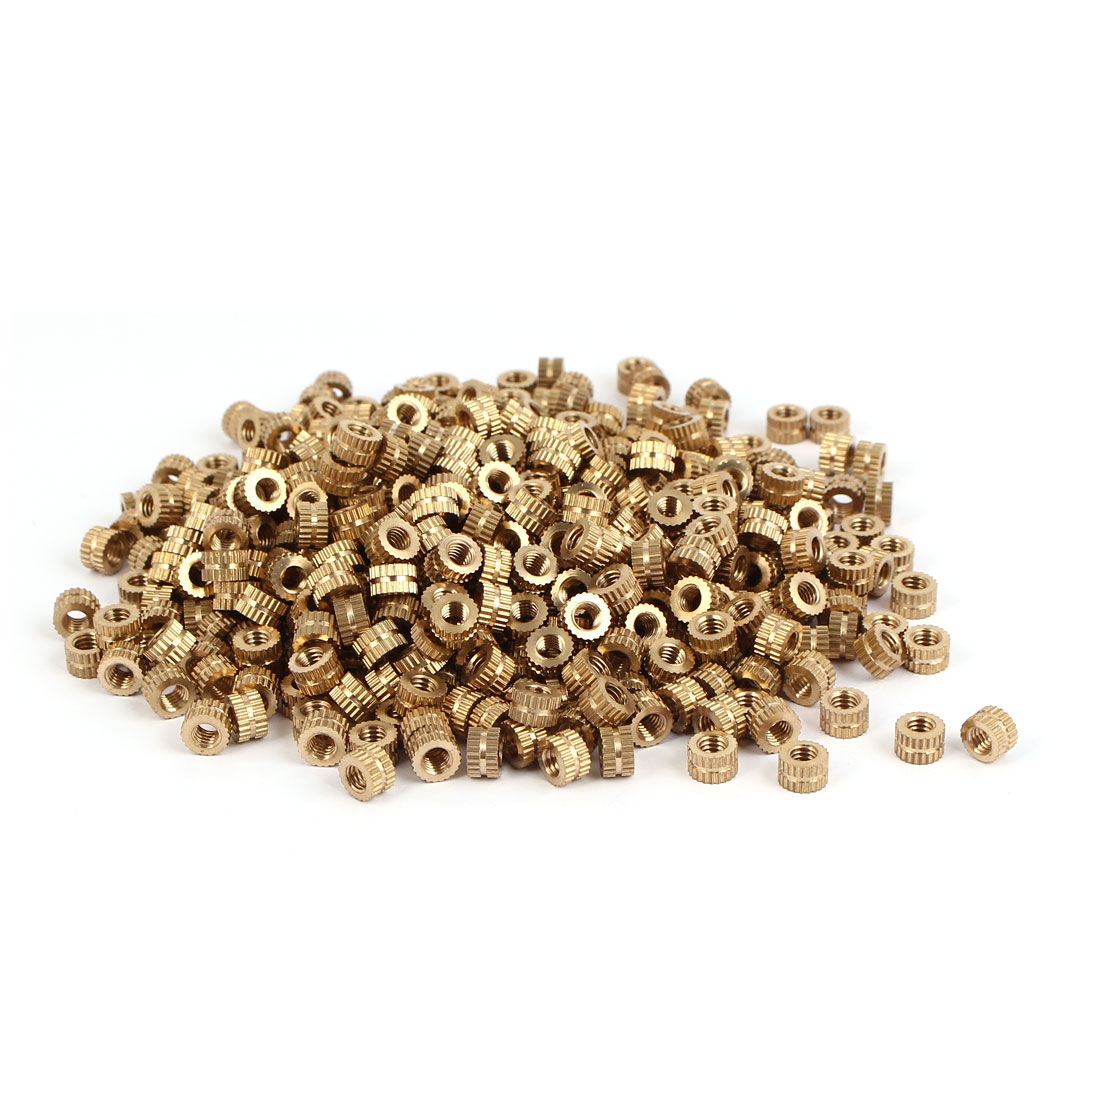 M4 x 4mm Brass Cylinder Injection Molding Knurled Insert Embedded Nuts 500PCS